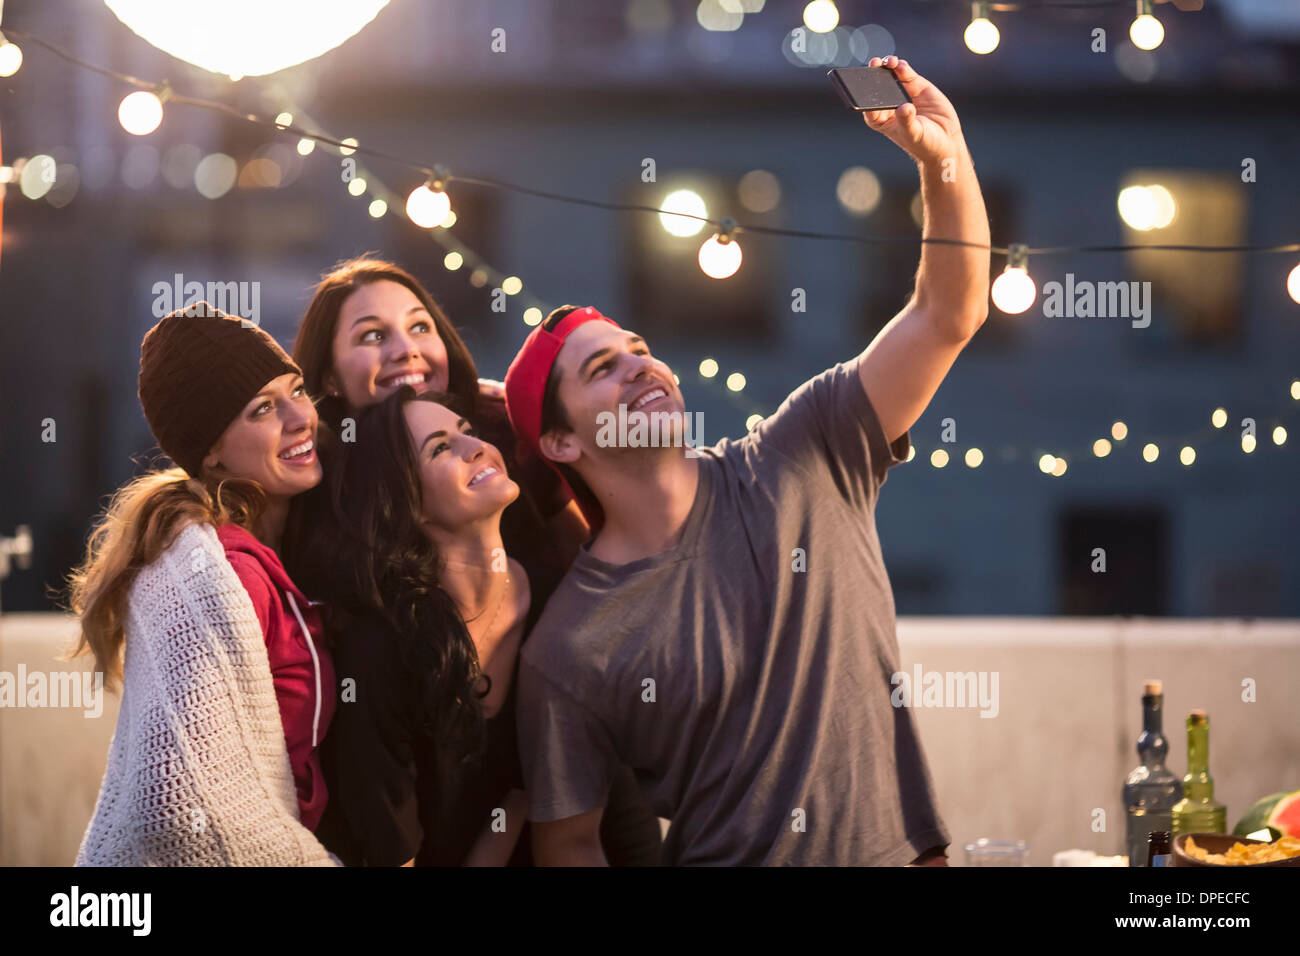 Young adult friends taking self portrait at party - Stock Image